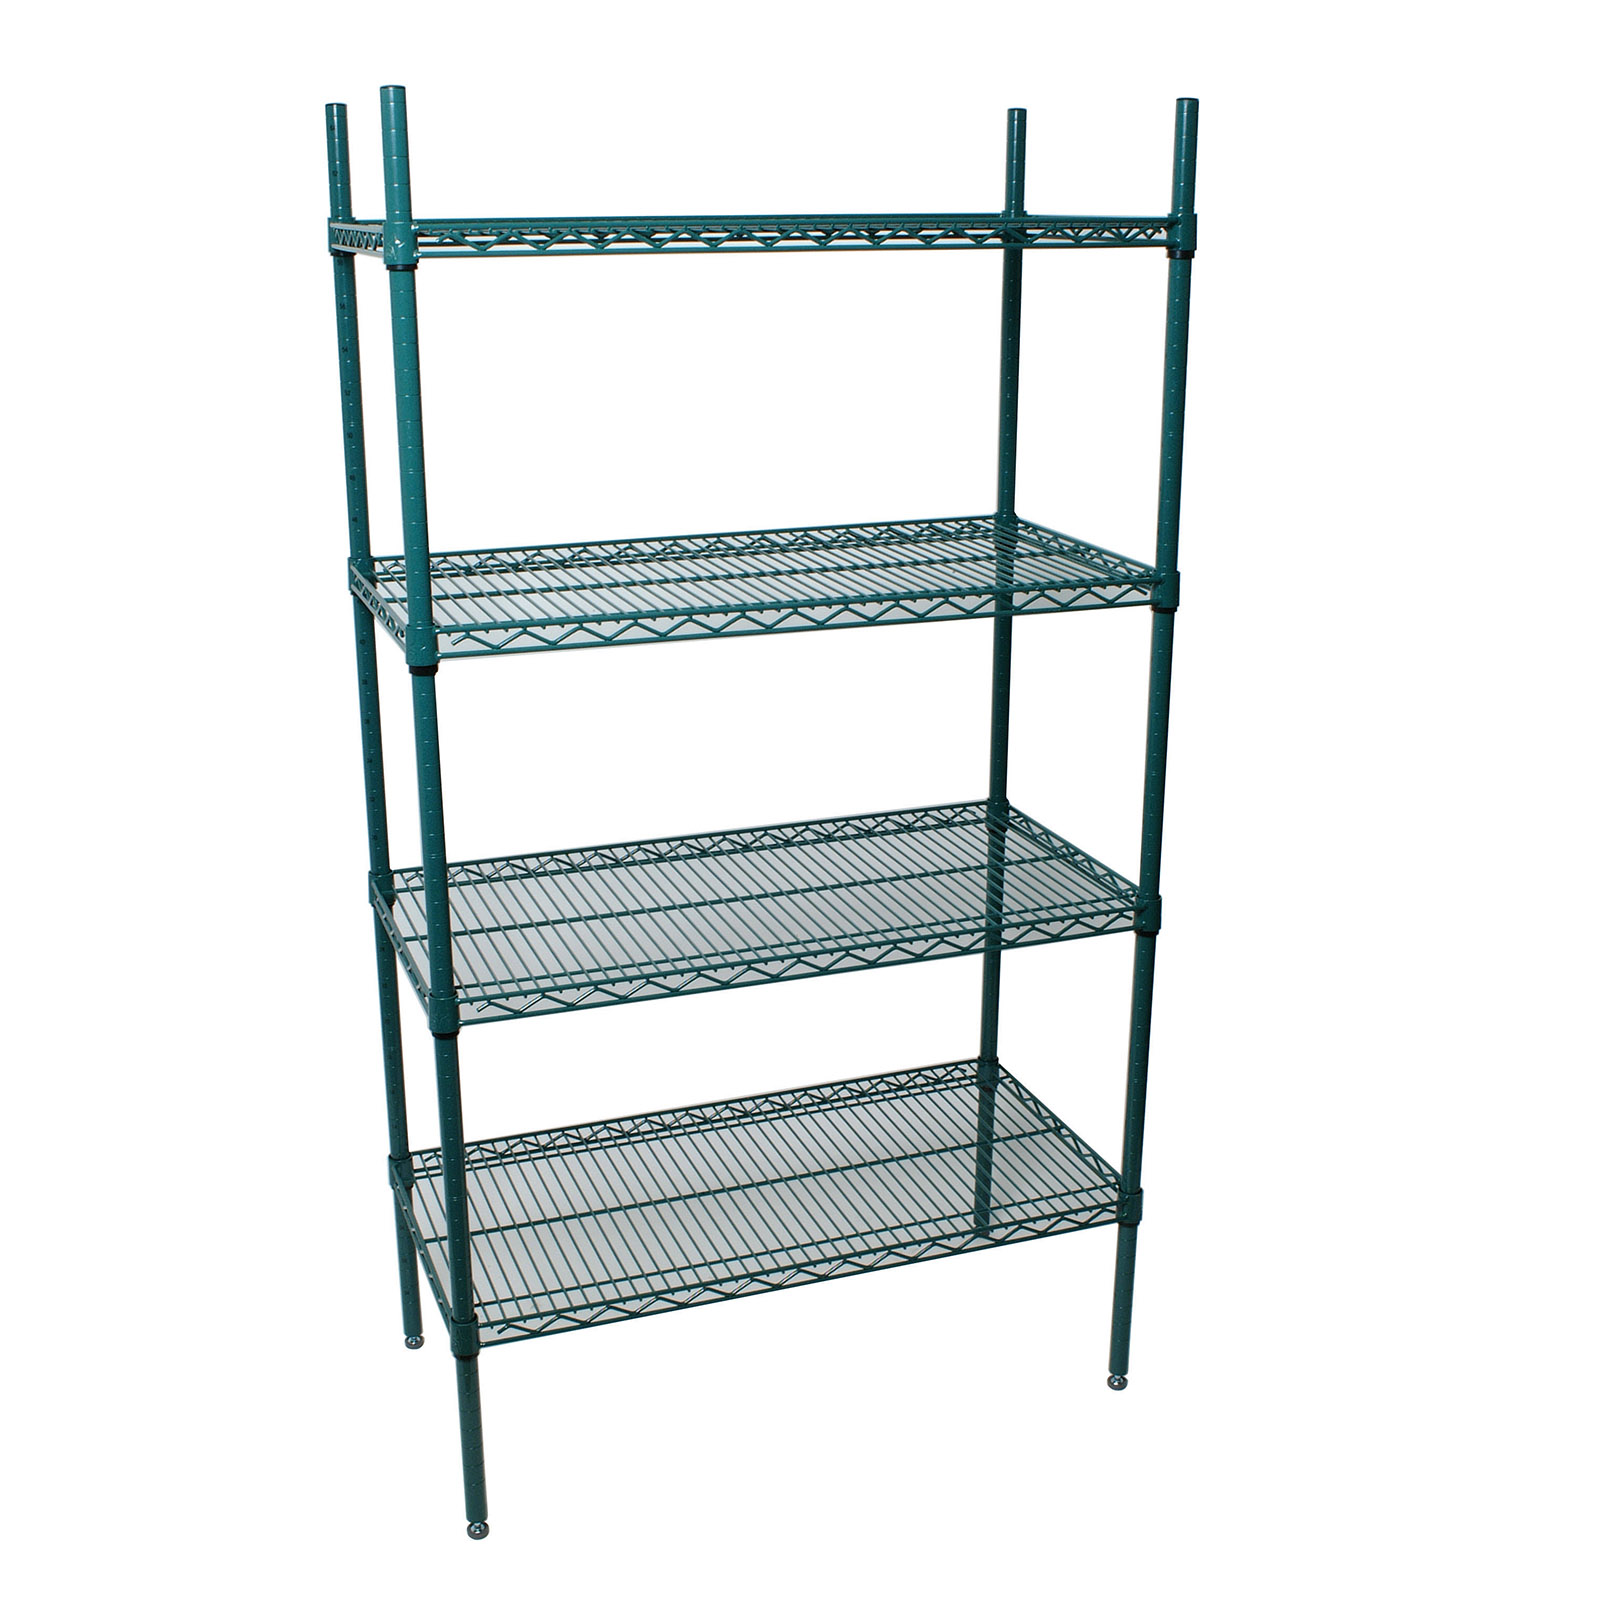 224367 Crown Brands, LLC shelving unit, wire